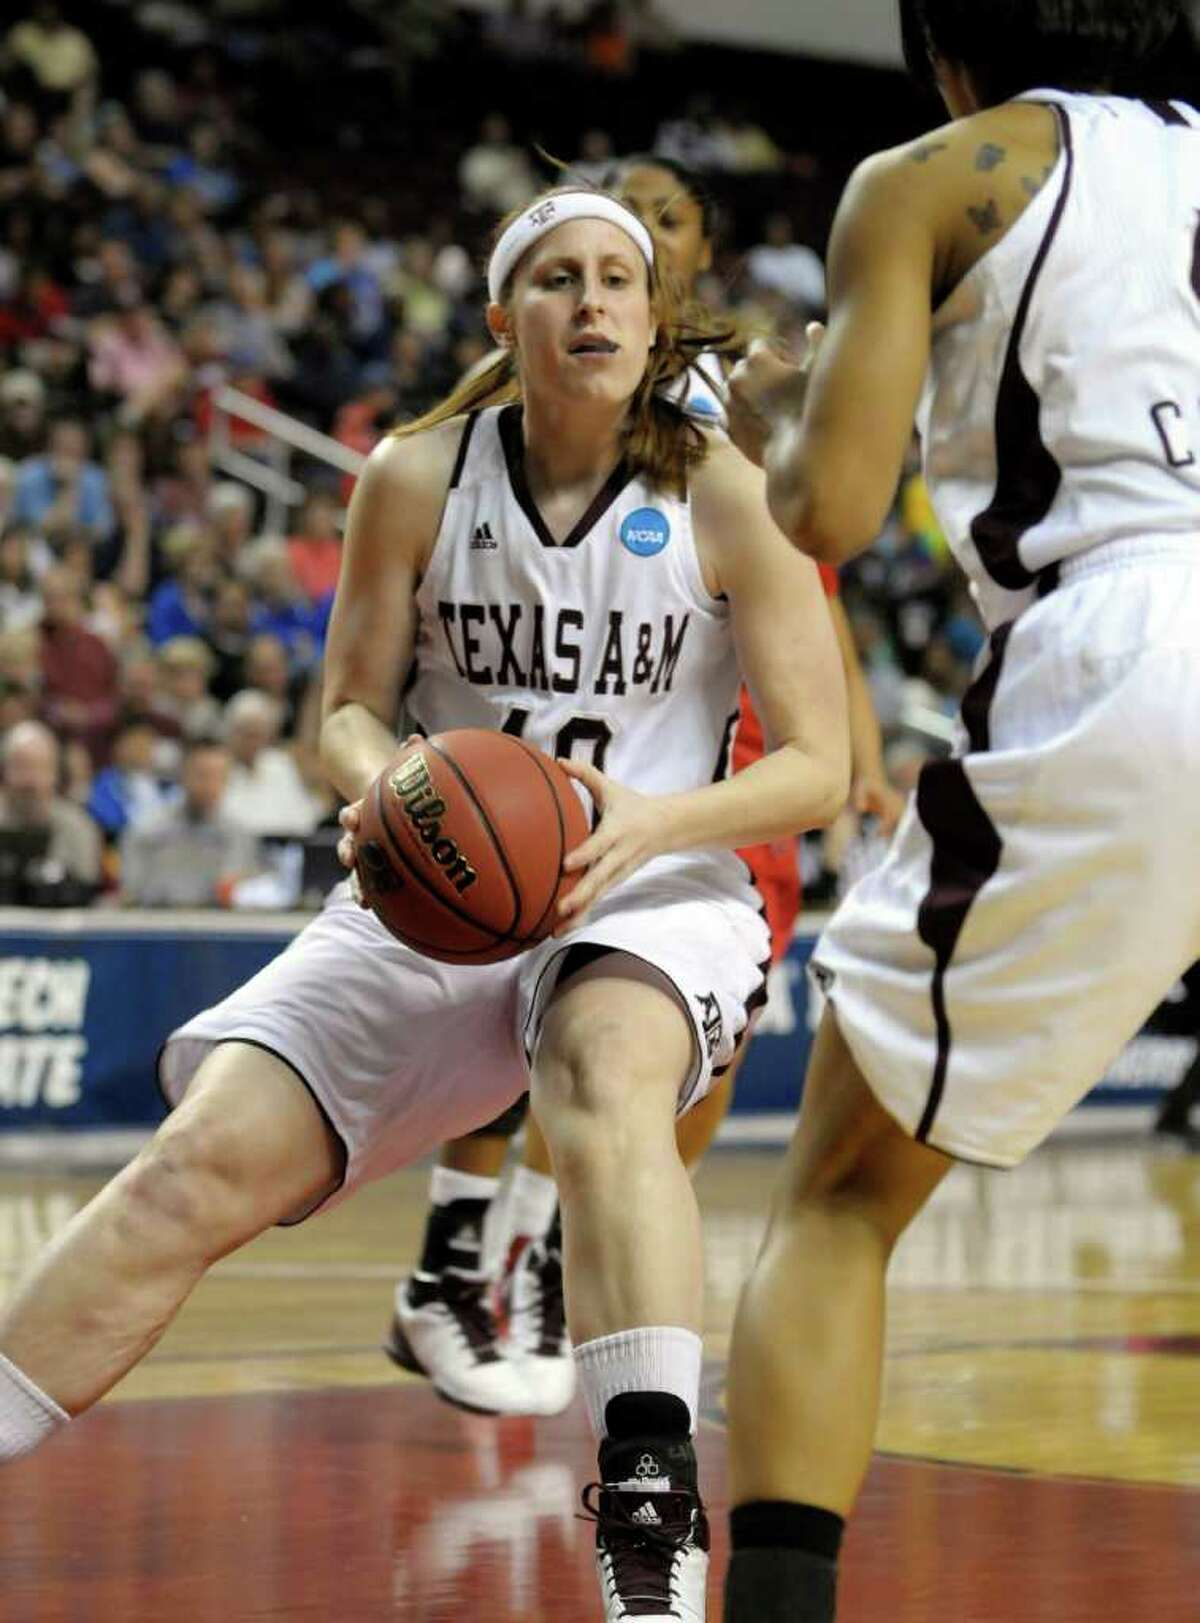 Texas A&M forward Kelsey Assarian (40) looks for a teammate after pulling down a rebound against Rutgers during the first half of a second-round game of the NCAA women's college basketball tournament on Tuesday, March 22, 2011, in Shreveport, La.